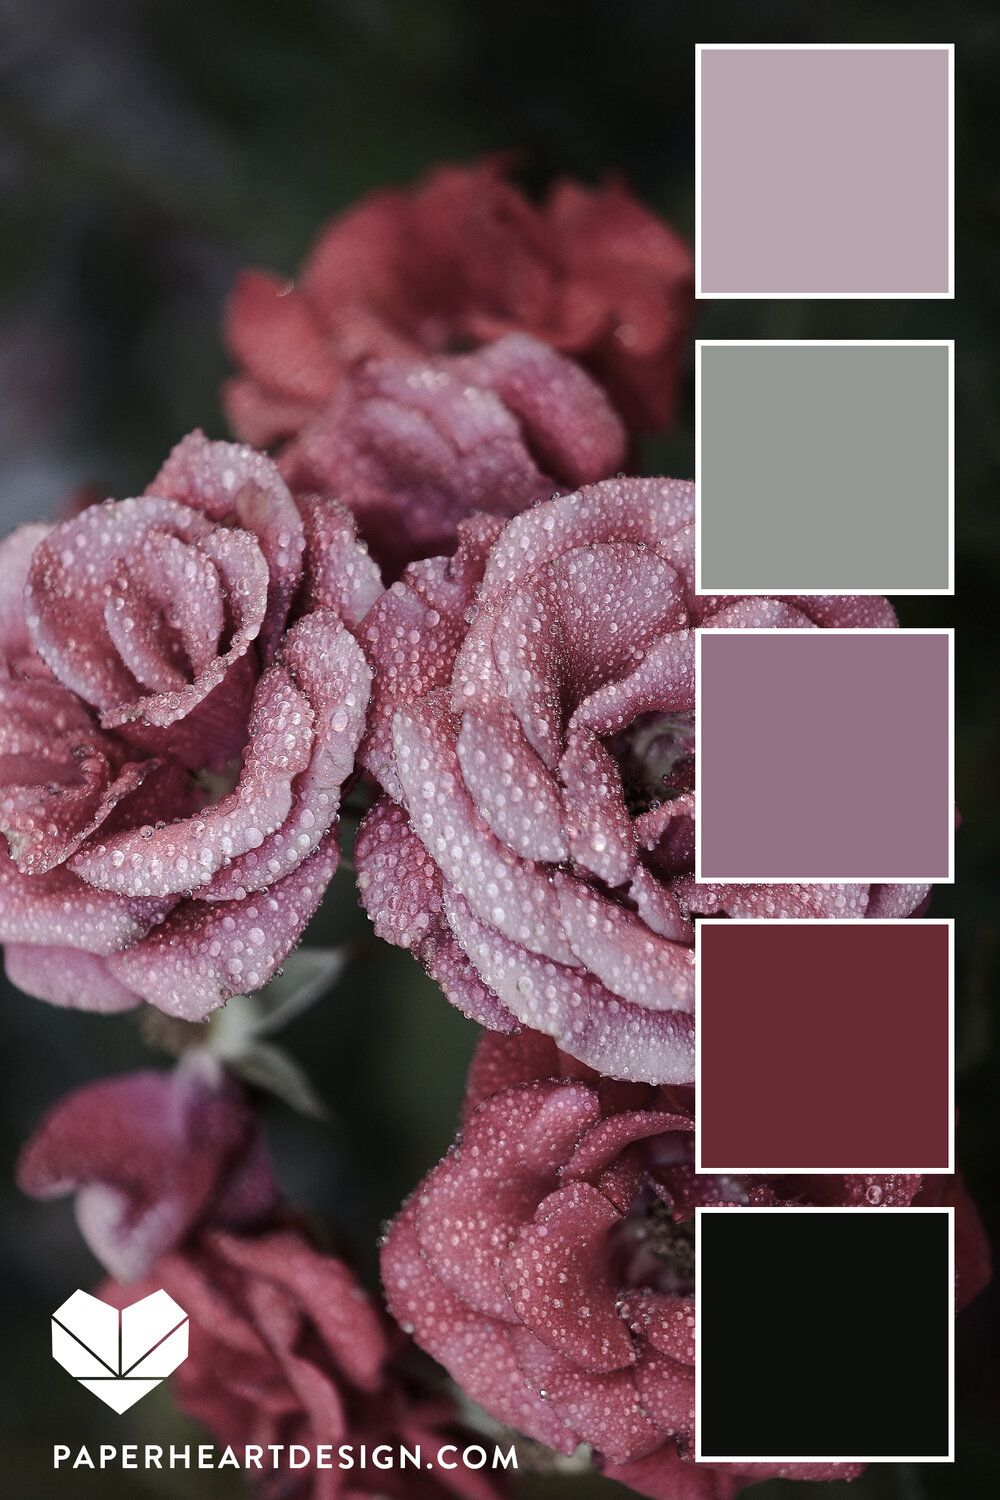 Dusty Floral Color Palette Muted Pinks And Rose Colors With Sage Green And Dark Gray Color Schemes Colour Palettes Color Schemes Floral Color